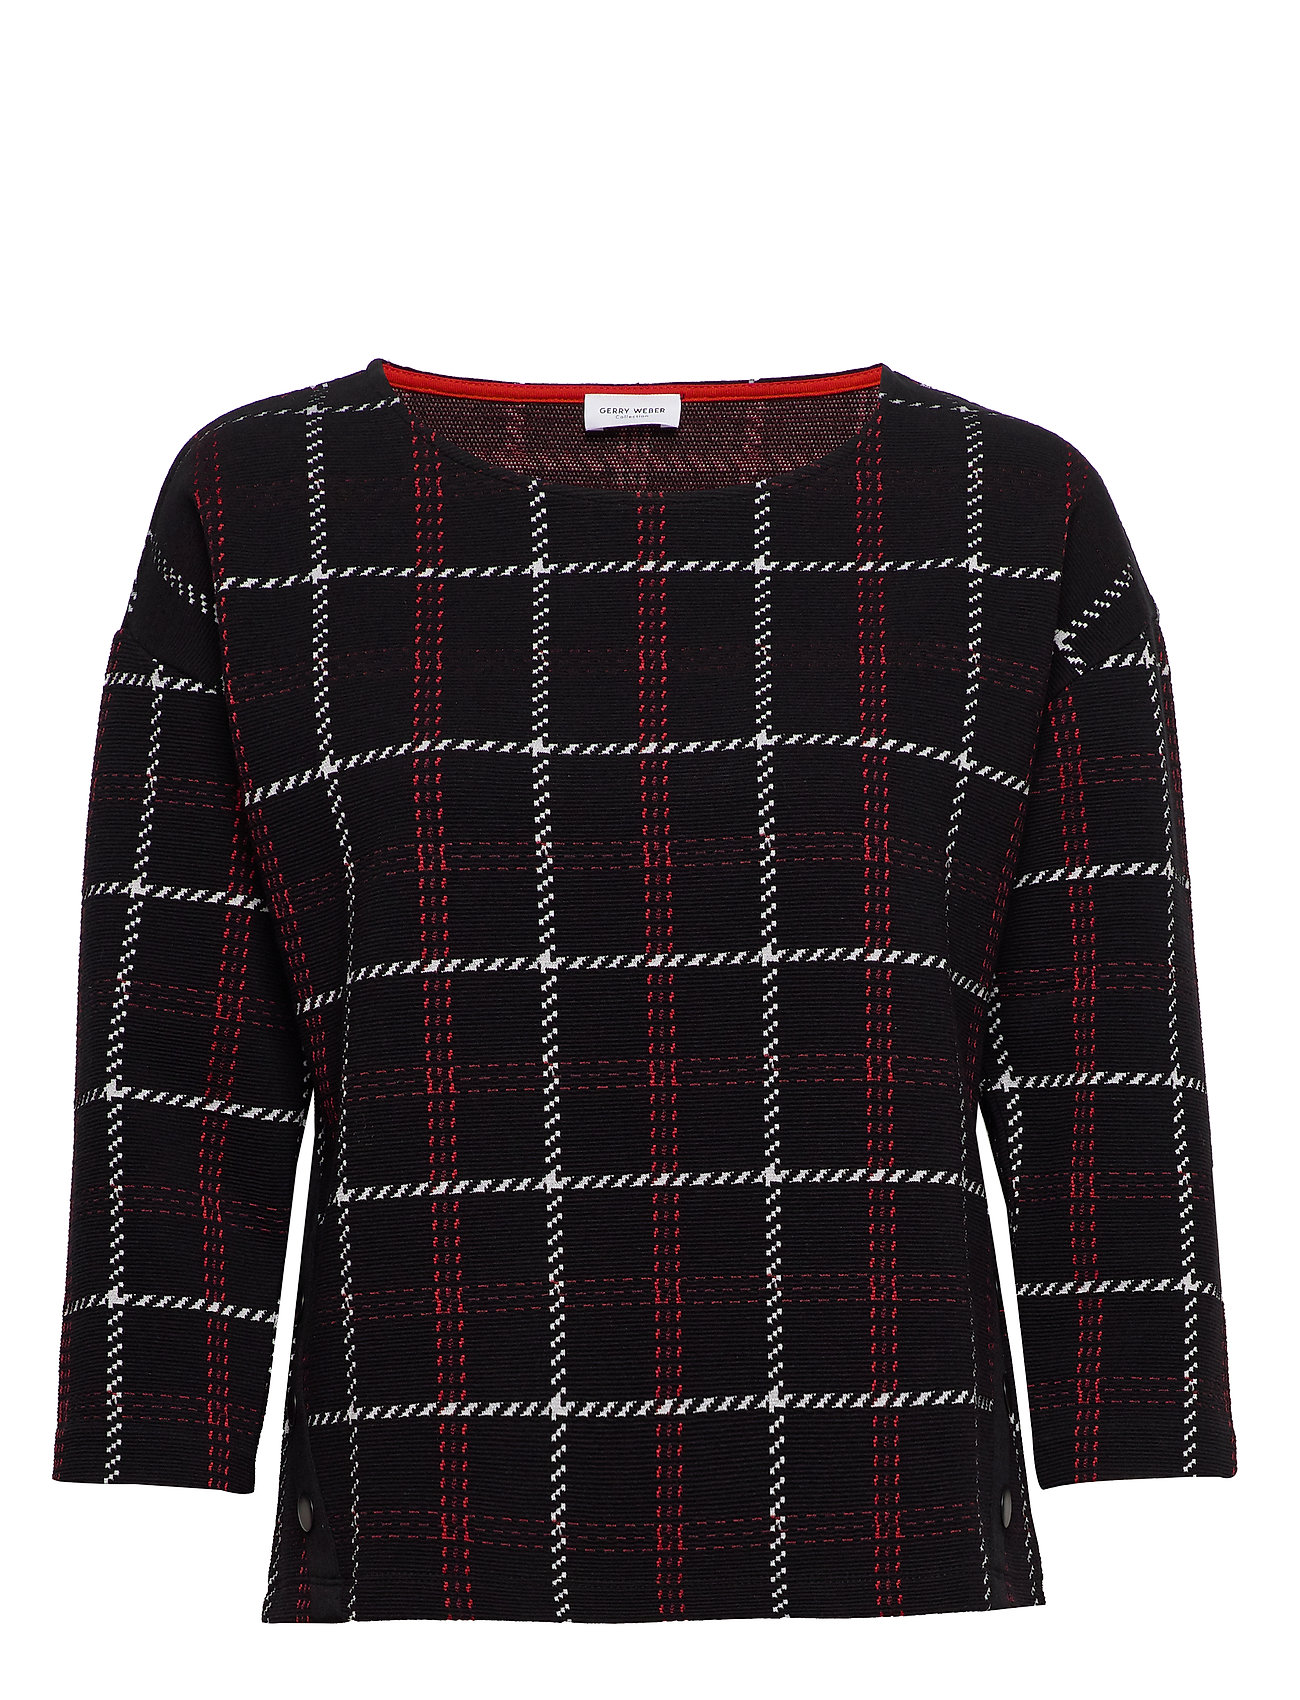 Gerry Weber SWEAT-SHIRT SHORT-SL - BLACK OFFWHITE RED CHECK